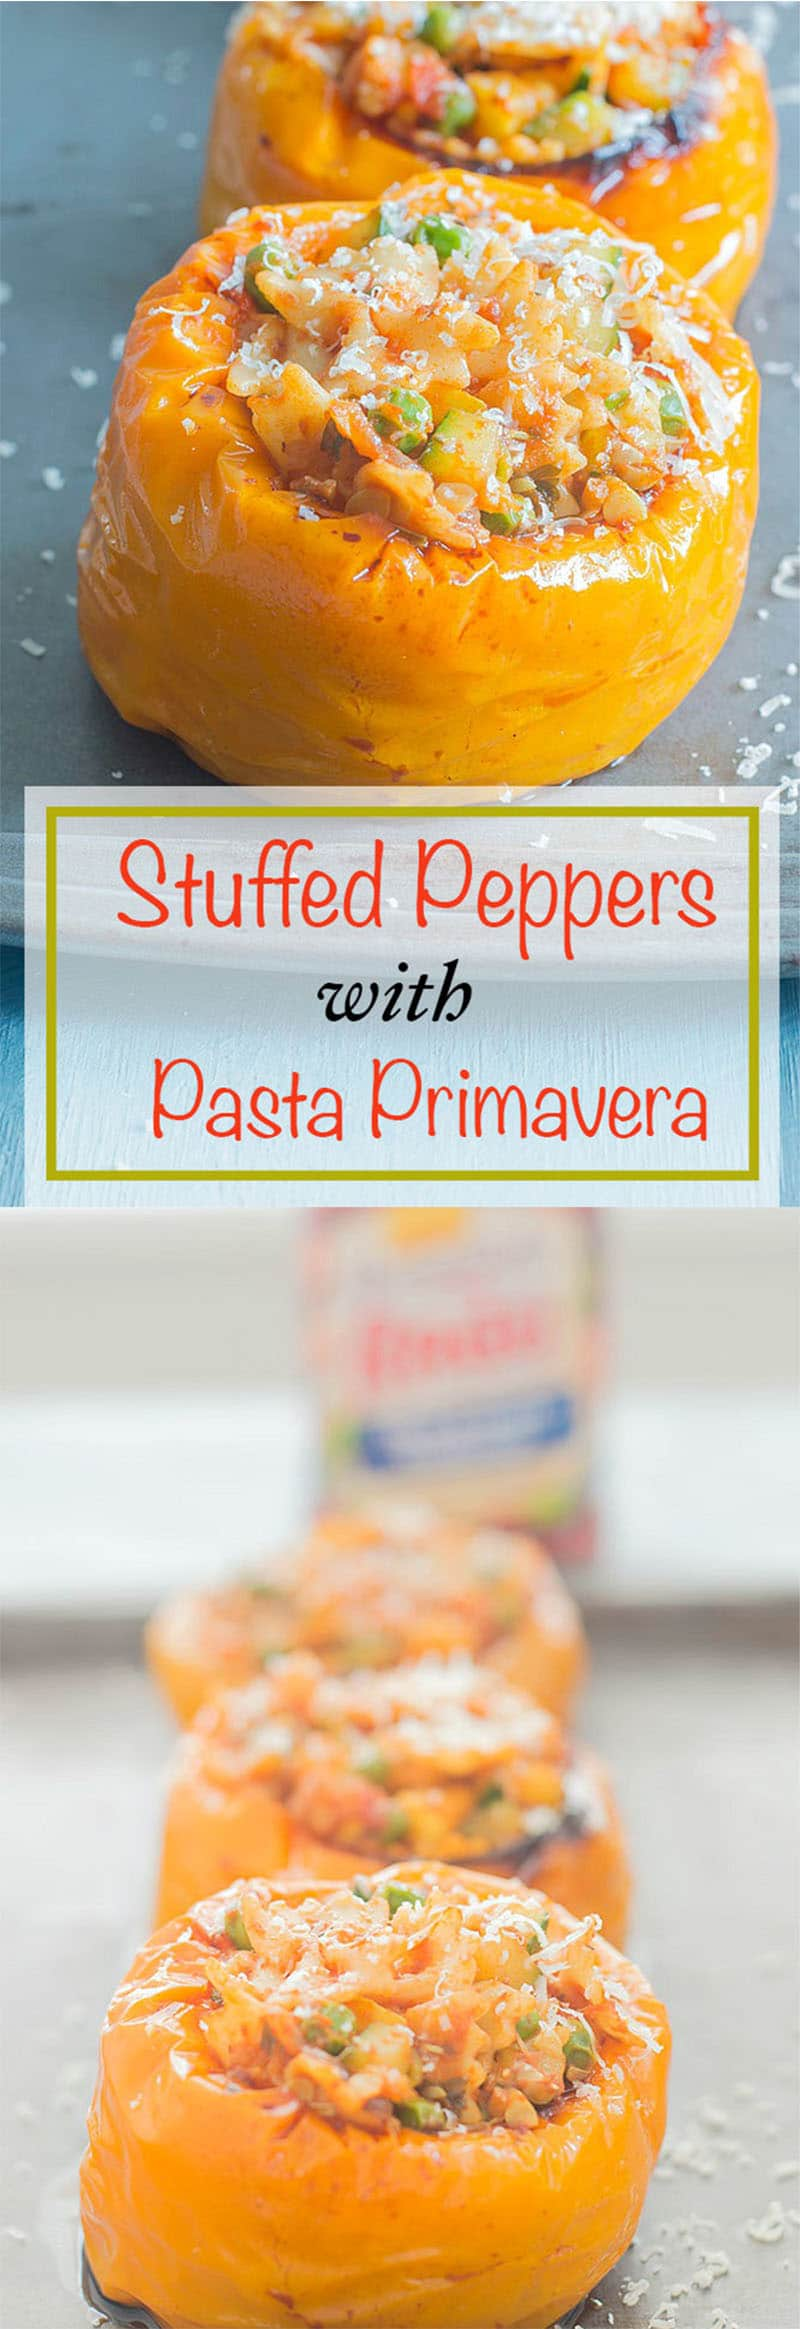 Stuffed Peppers - Peppers are delicately roasted and then stuffed with pasta primavera. The pasta primavera is made using Mini farfalle, shallots, fresh rosemary, fresh parsley, garlic, zucchini, squash and peas. This is the perfect weeknight dinner recipe for the whole family to enjoy. Vegan dinner and vegetarian dinner